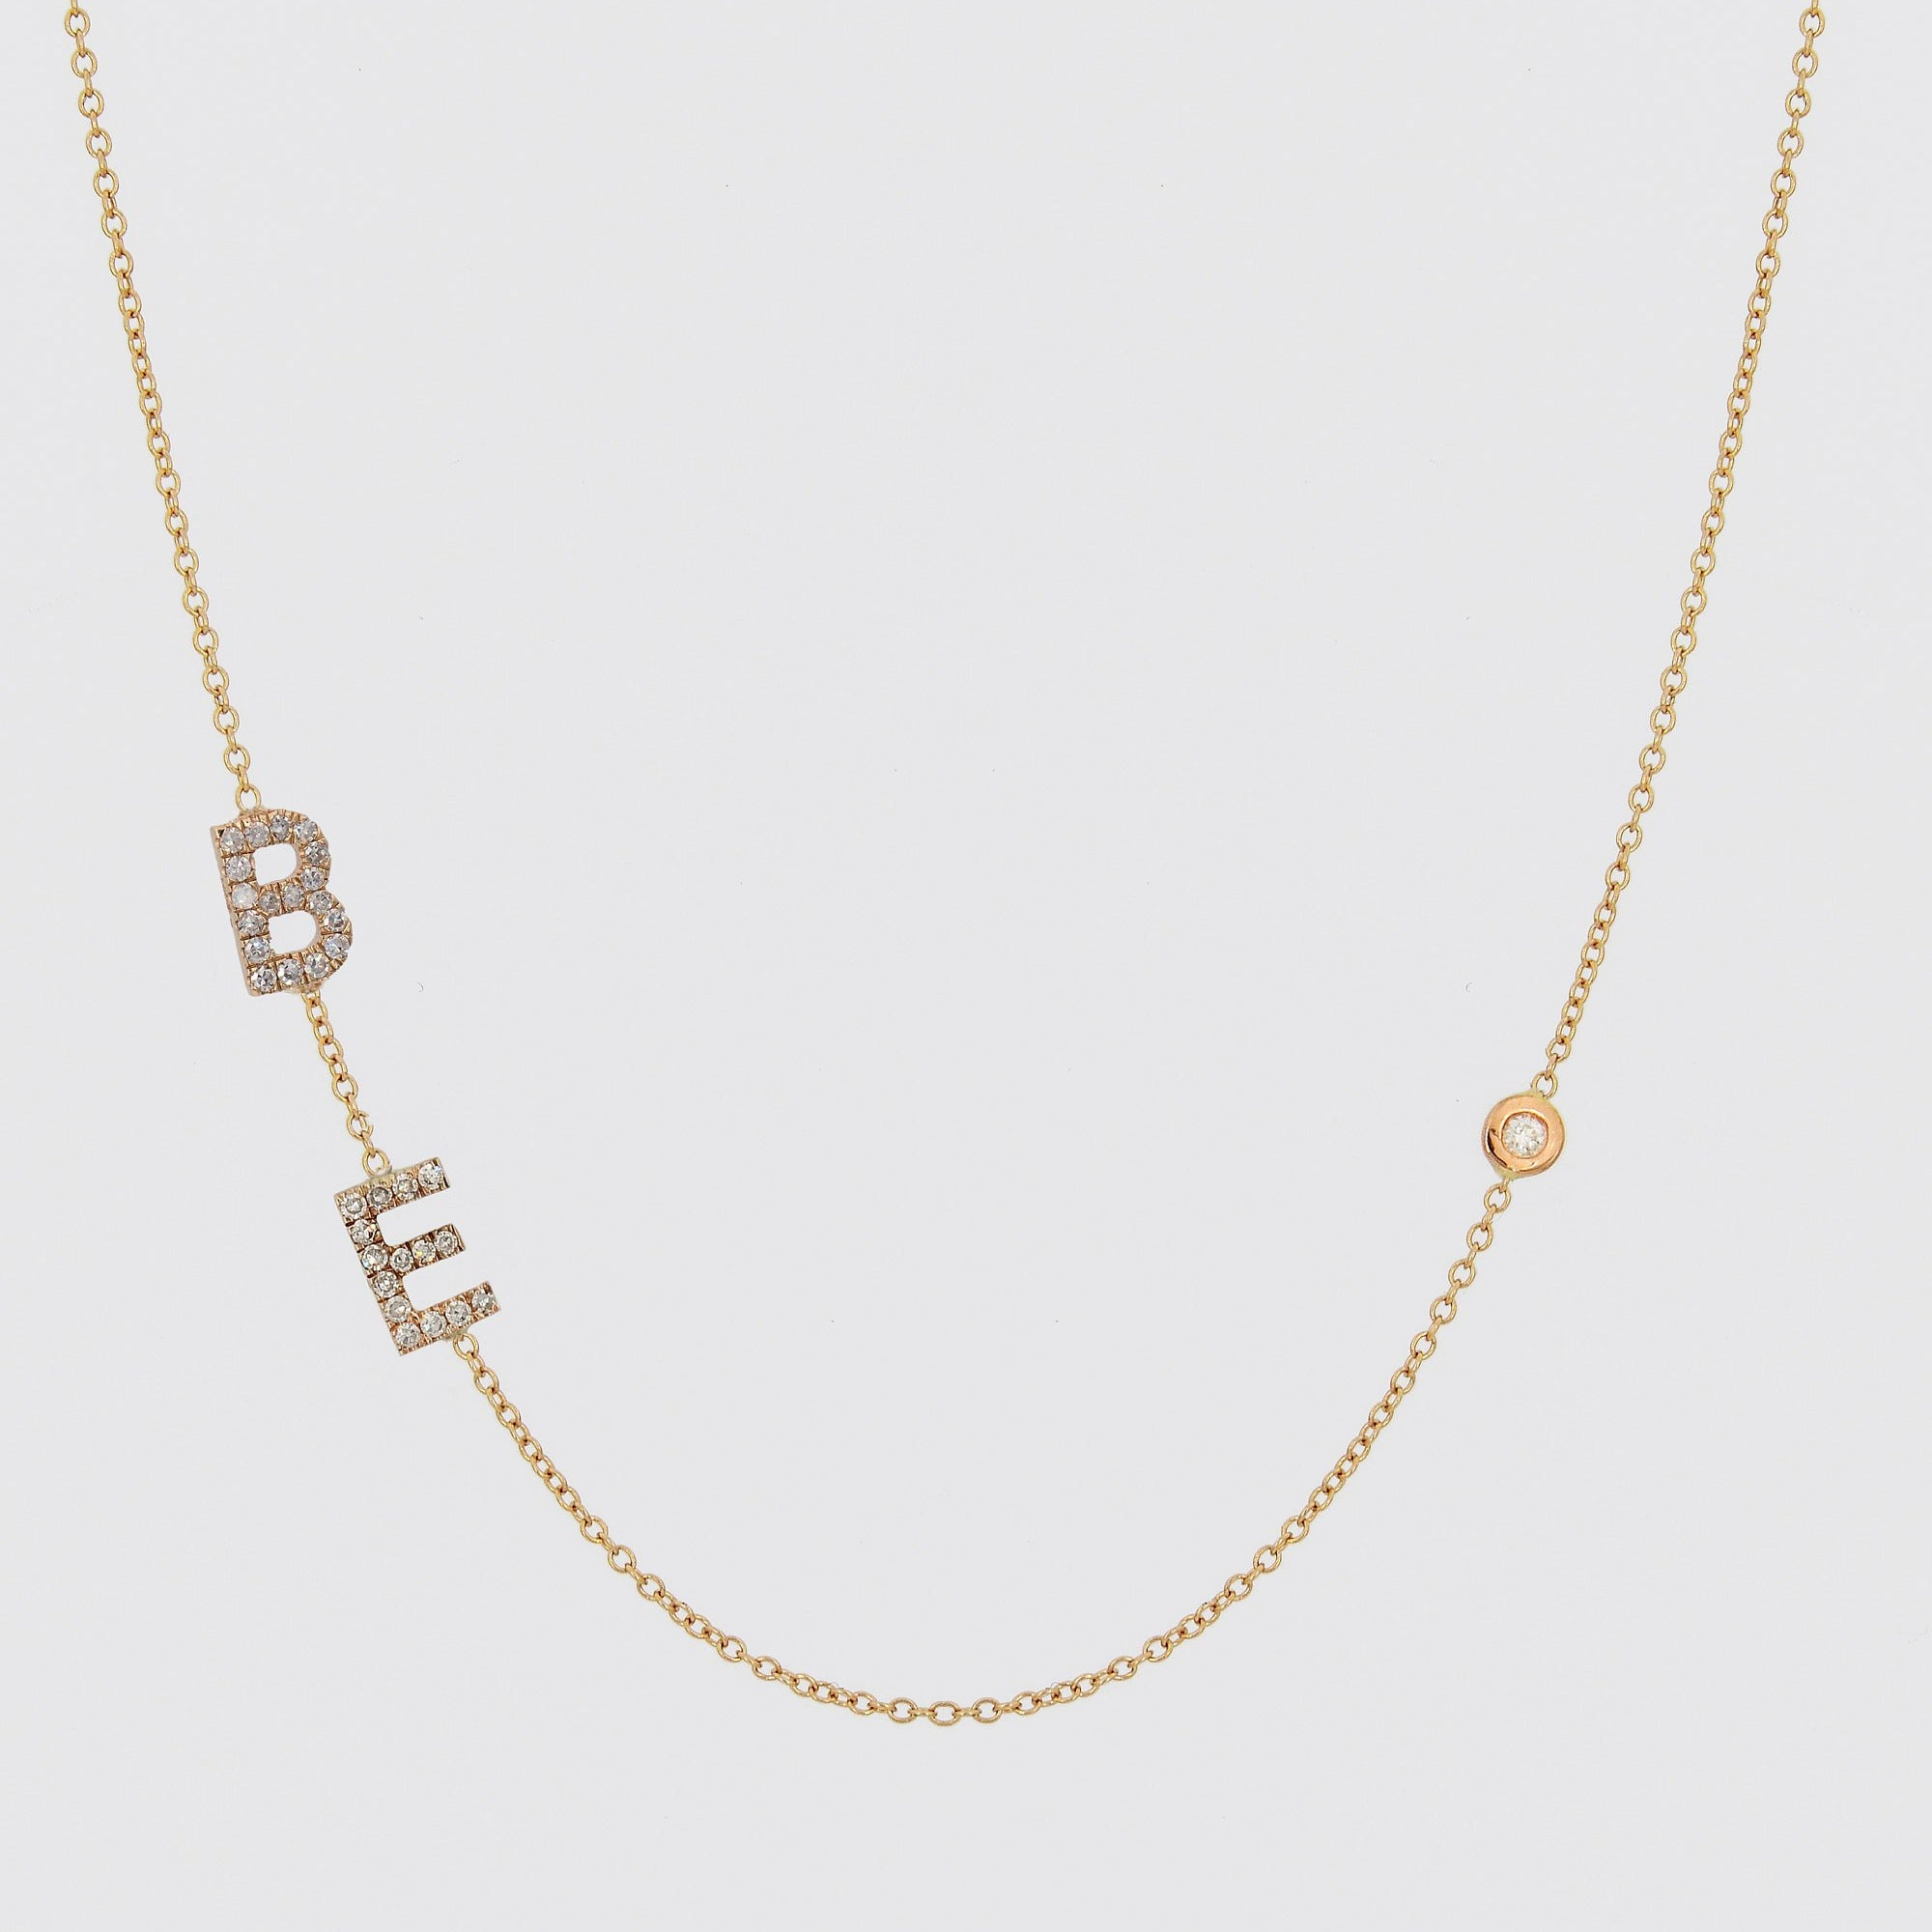 Diamond Initials Sideways Necklace, Alphabet Letter Necklace